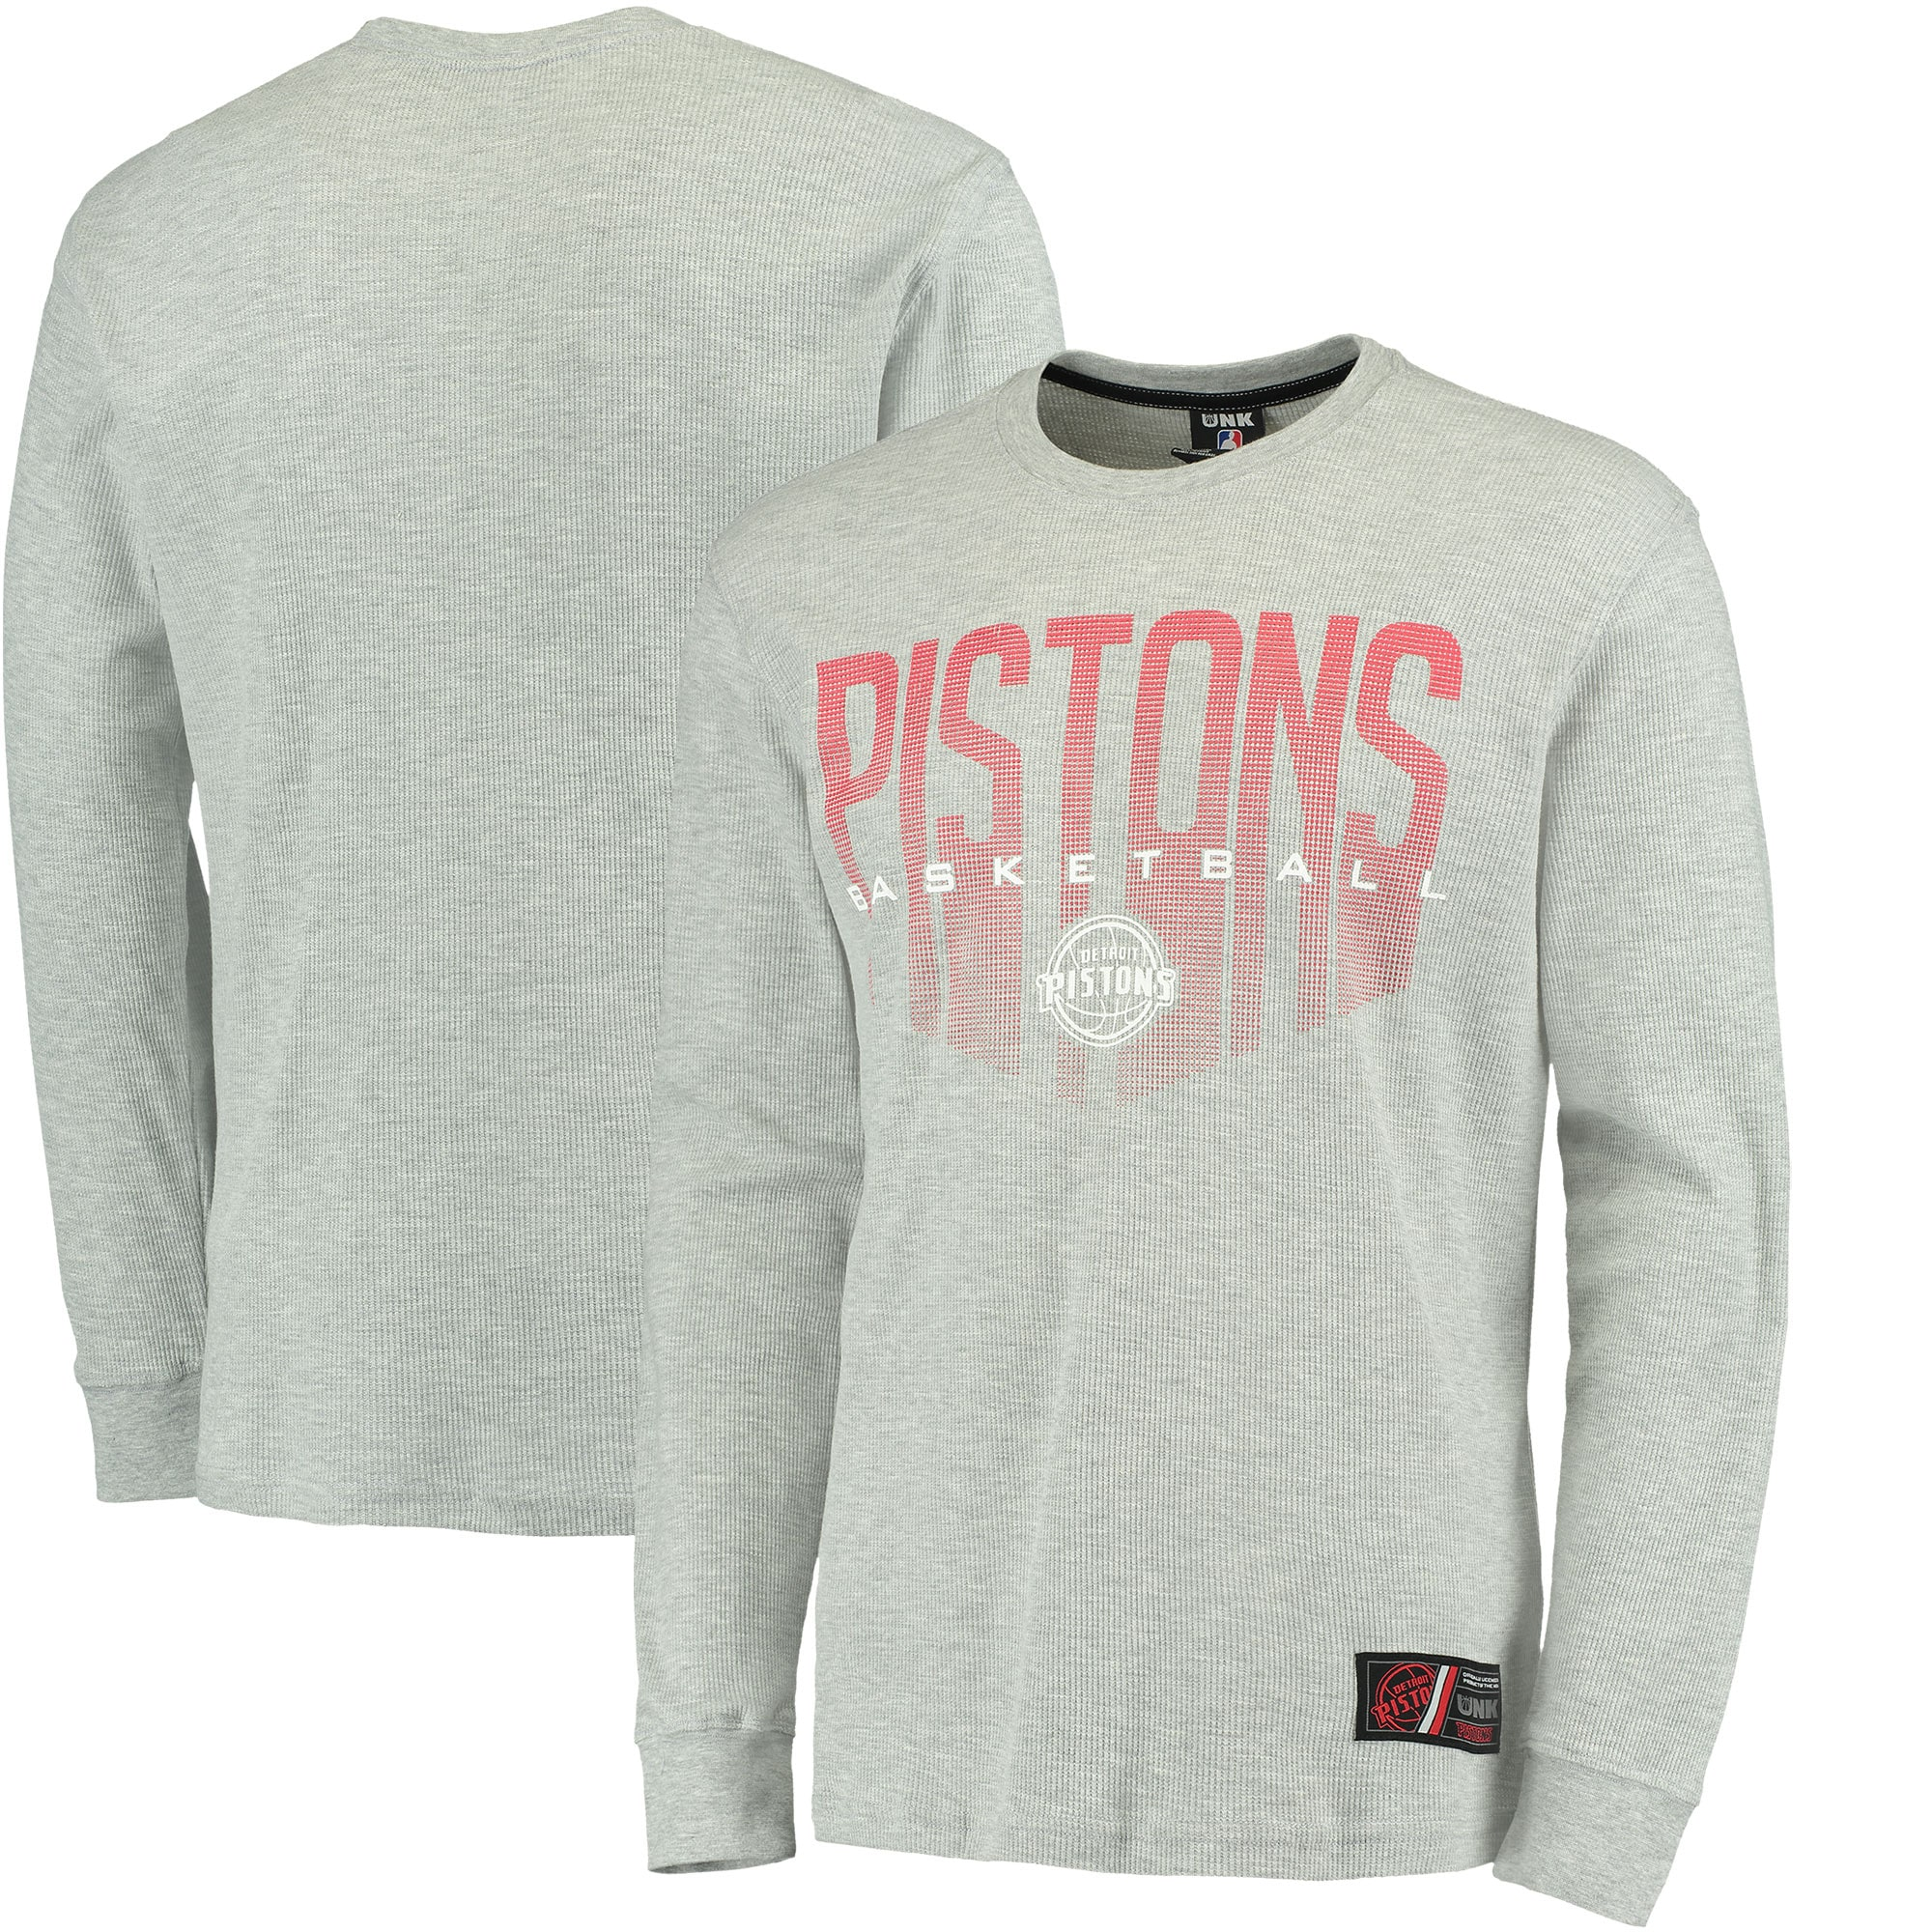 Detroit Pistons UNK Promo Core Long Sleeve Thermal T-Shirt - Gray